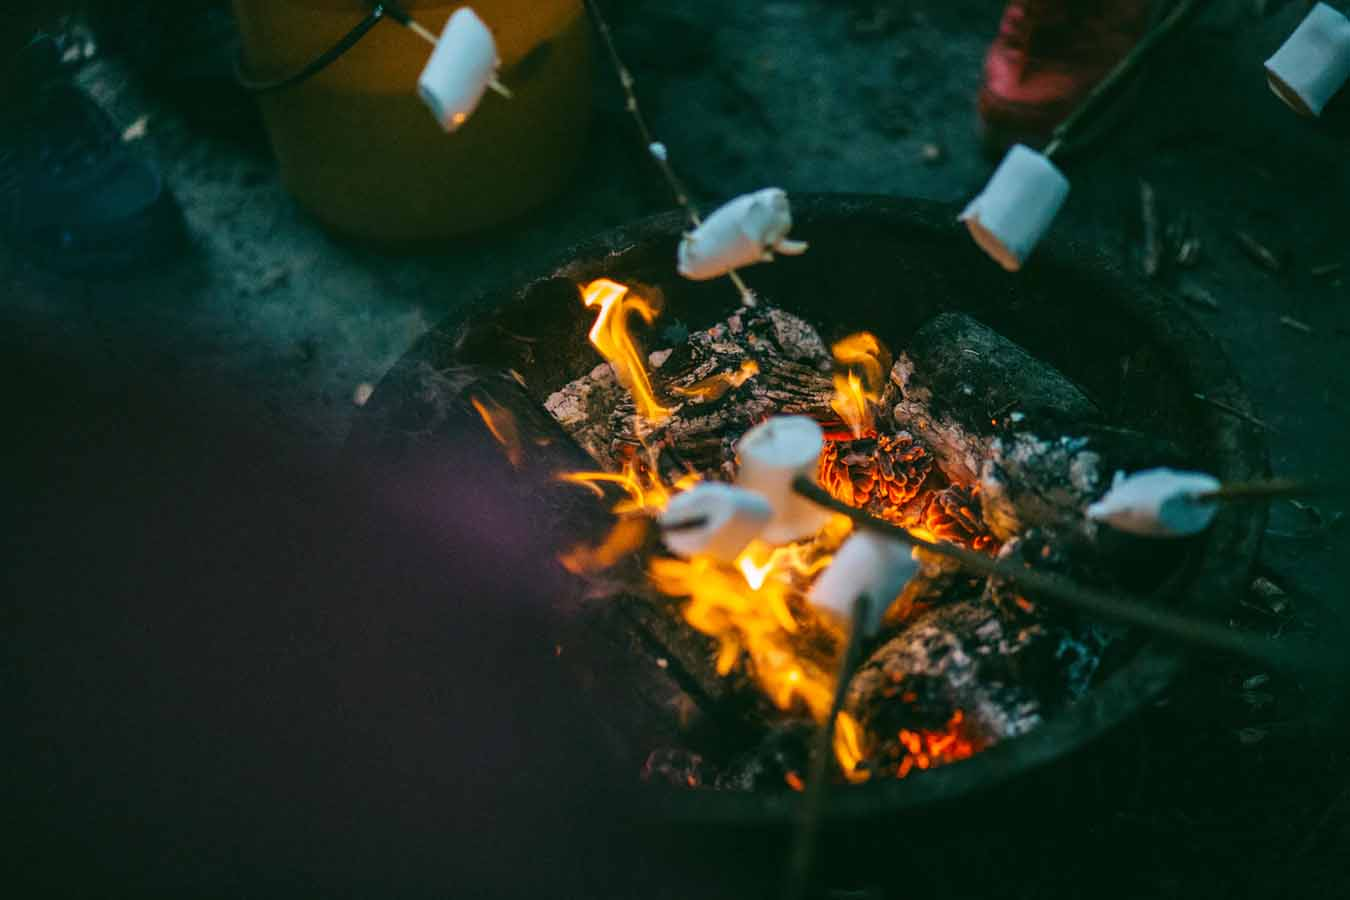 Best-Camping-Wood-Stove